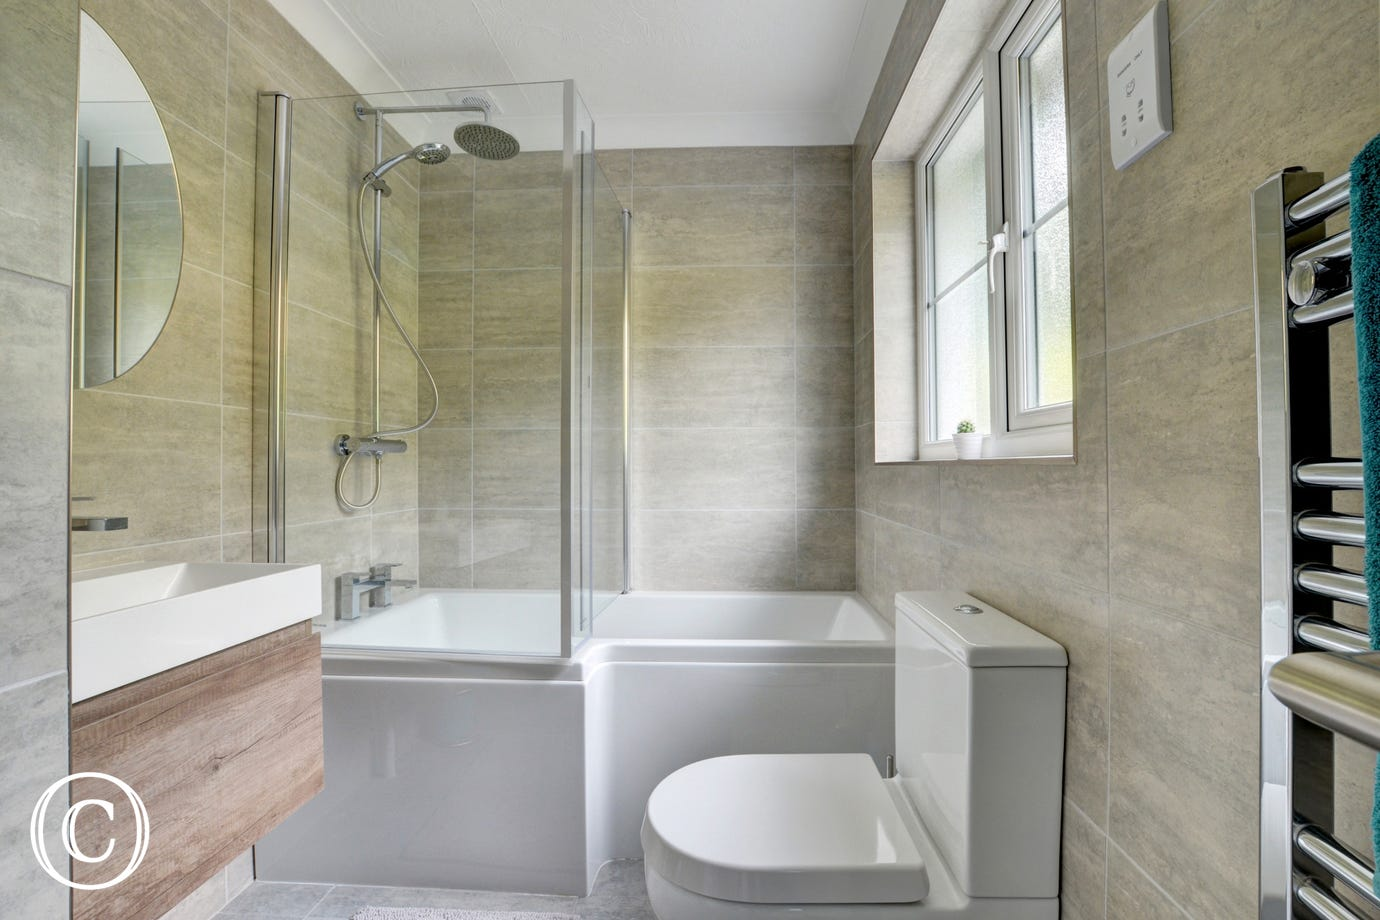 The family bathroom has a fully enclosed shower over the bath, WC, basin and heated towel rail